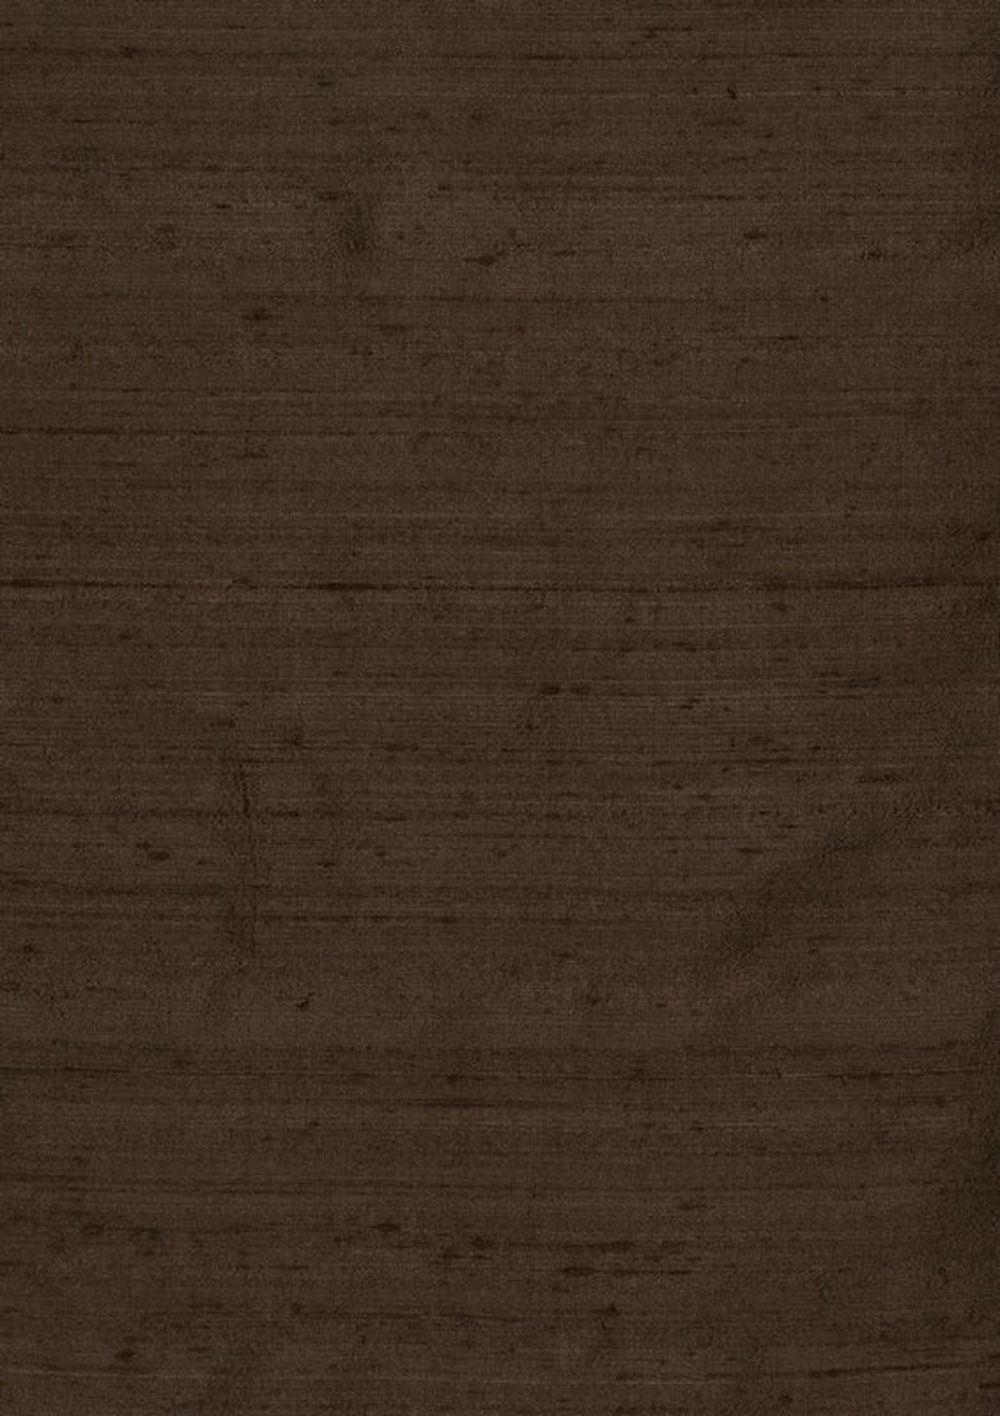 Photo of the fabric Luxury Brownie-170 swatch by James Dunlop. Use for Curtains. Style of Plain